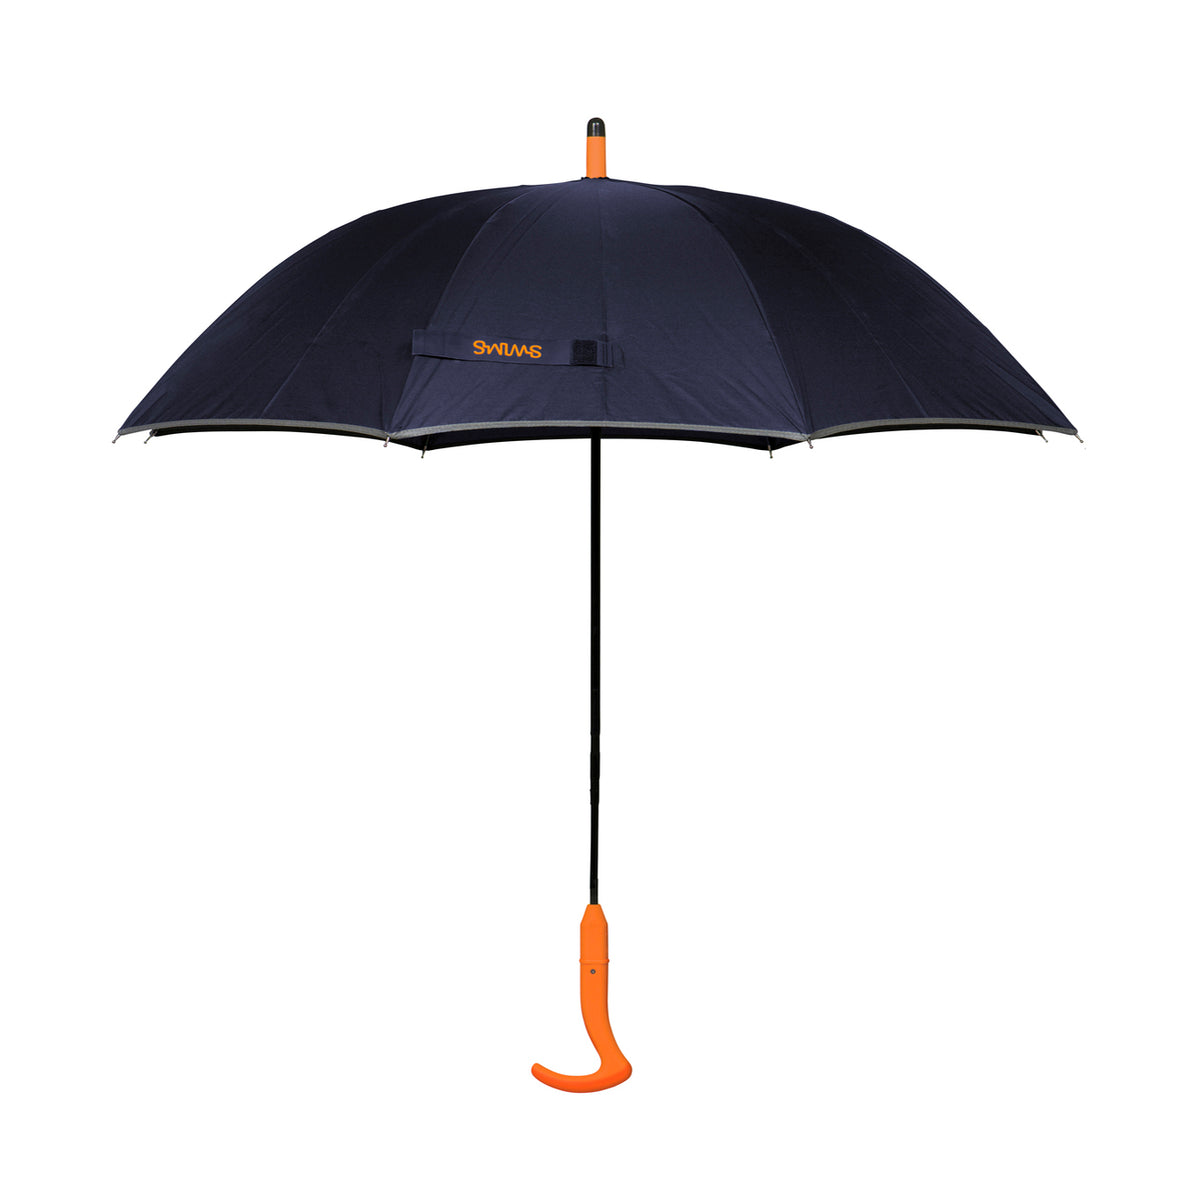 Umbrella Long - background::white,variant::Navy/Orange